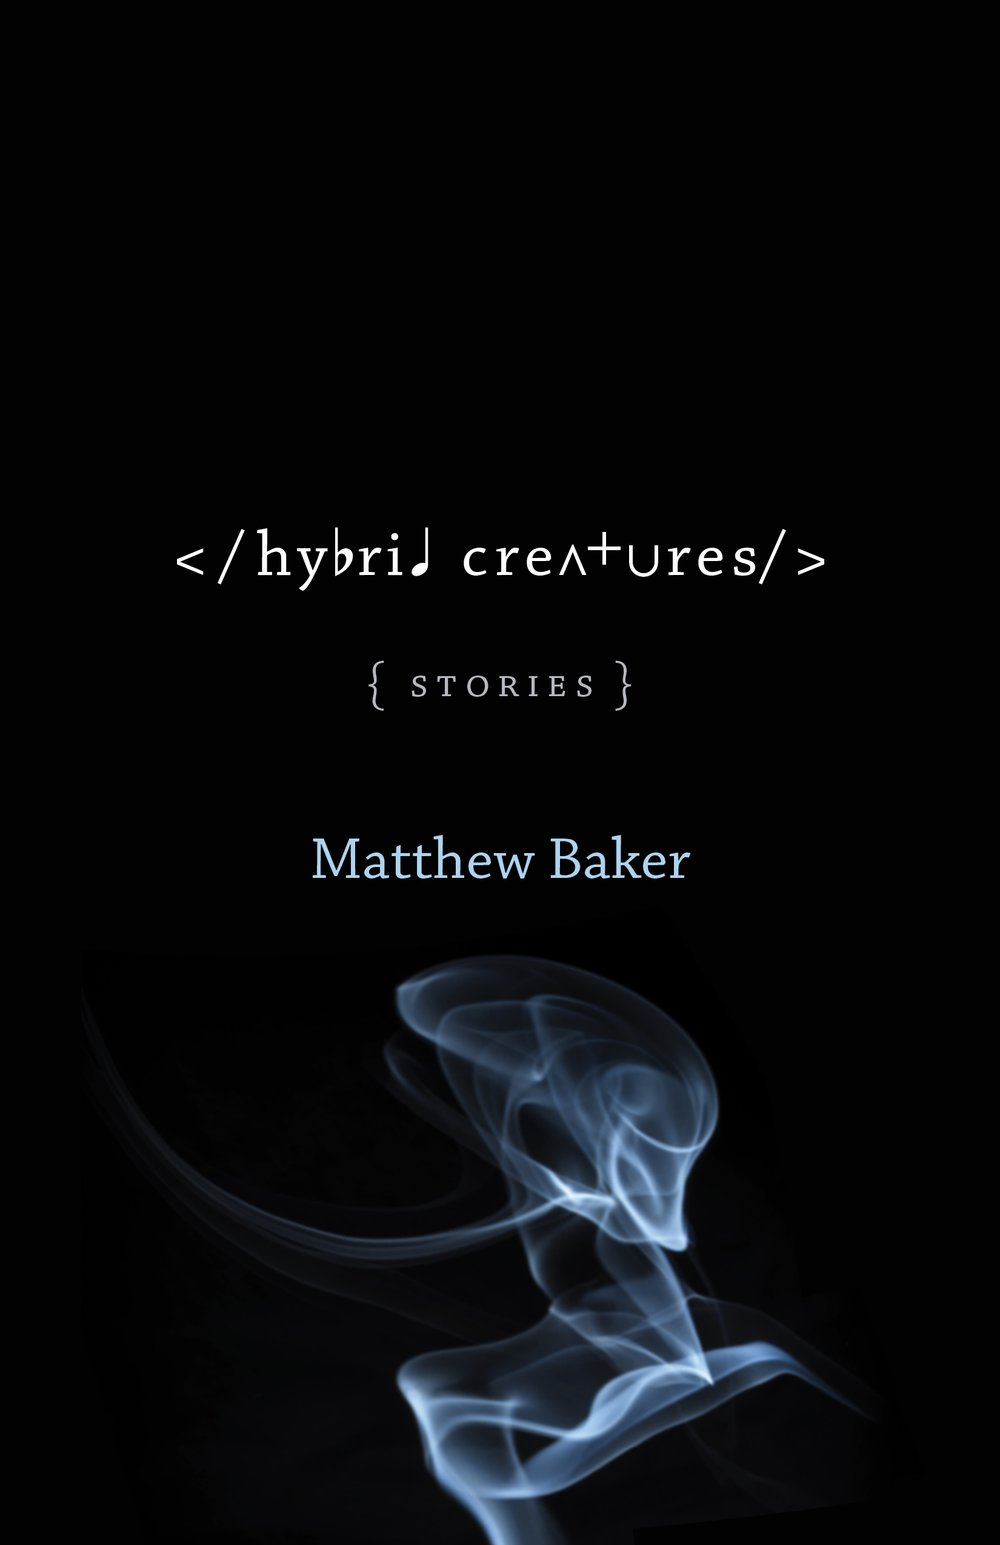 Hybrid Creatures by Matthew Baker - Publication date: February 18, 2018Publisher: LSU PressAuthor Website: mwektaehtabr.comBUY